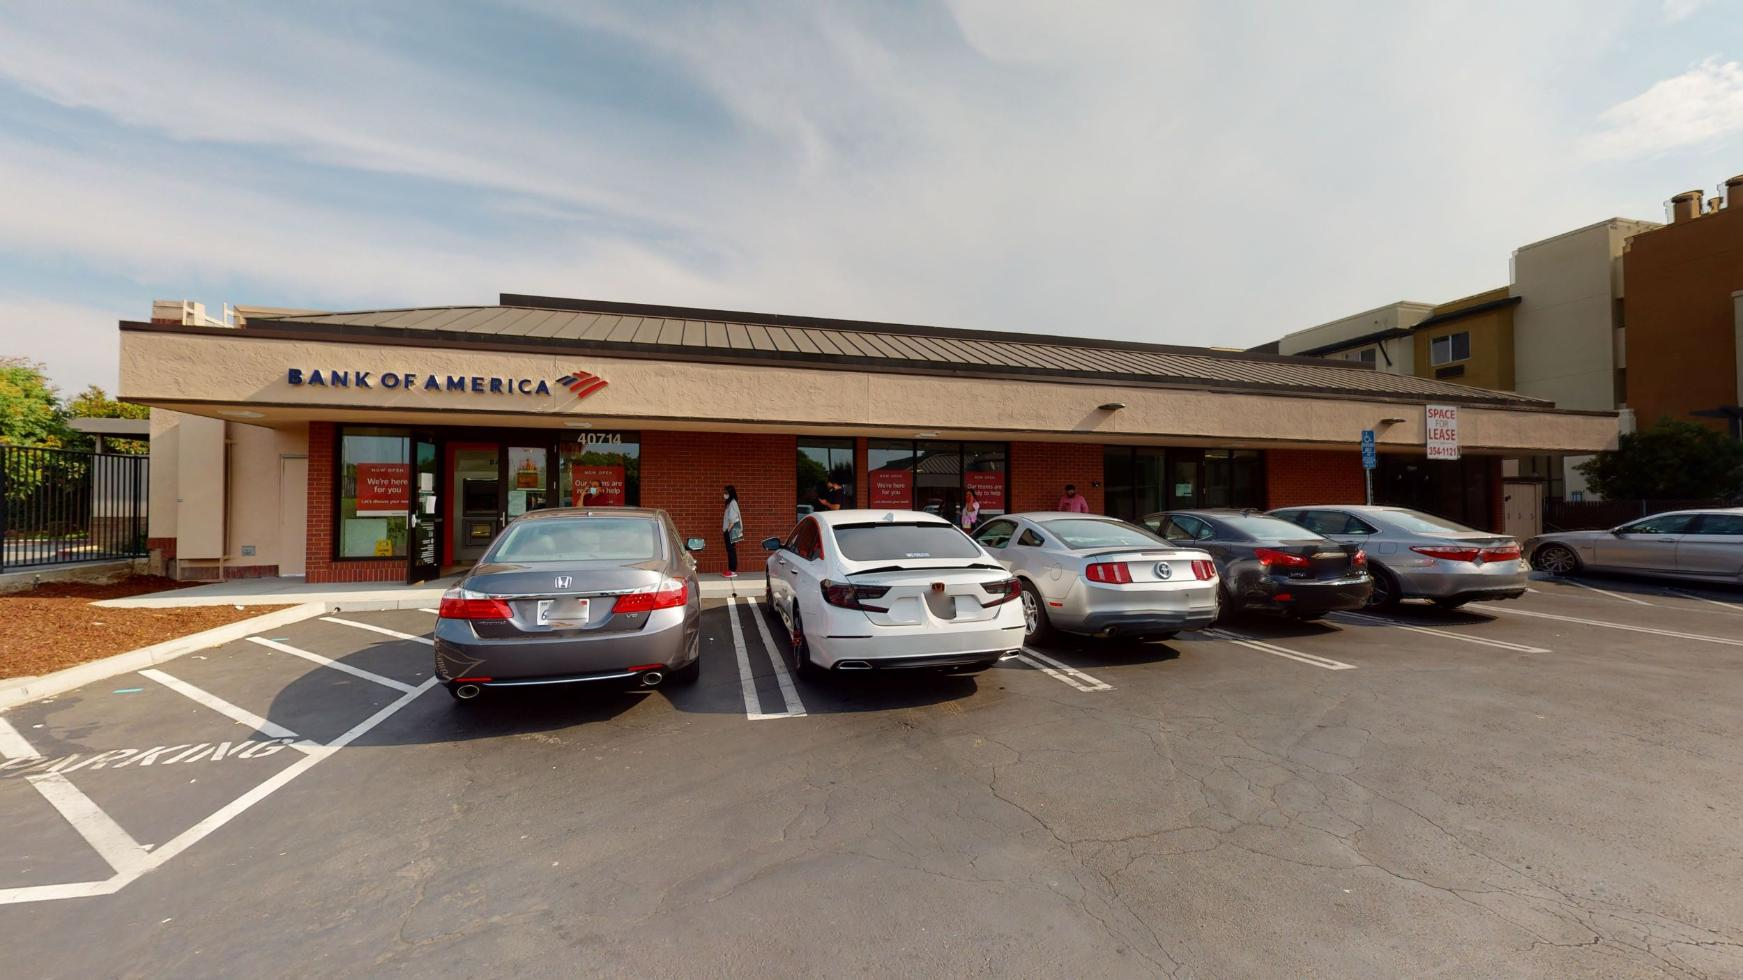 Bank of America financial center with walk-up ATM | 40714 Grimmer Blvd, Fremont, CA 94538